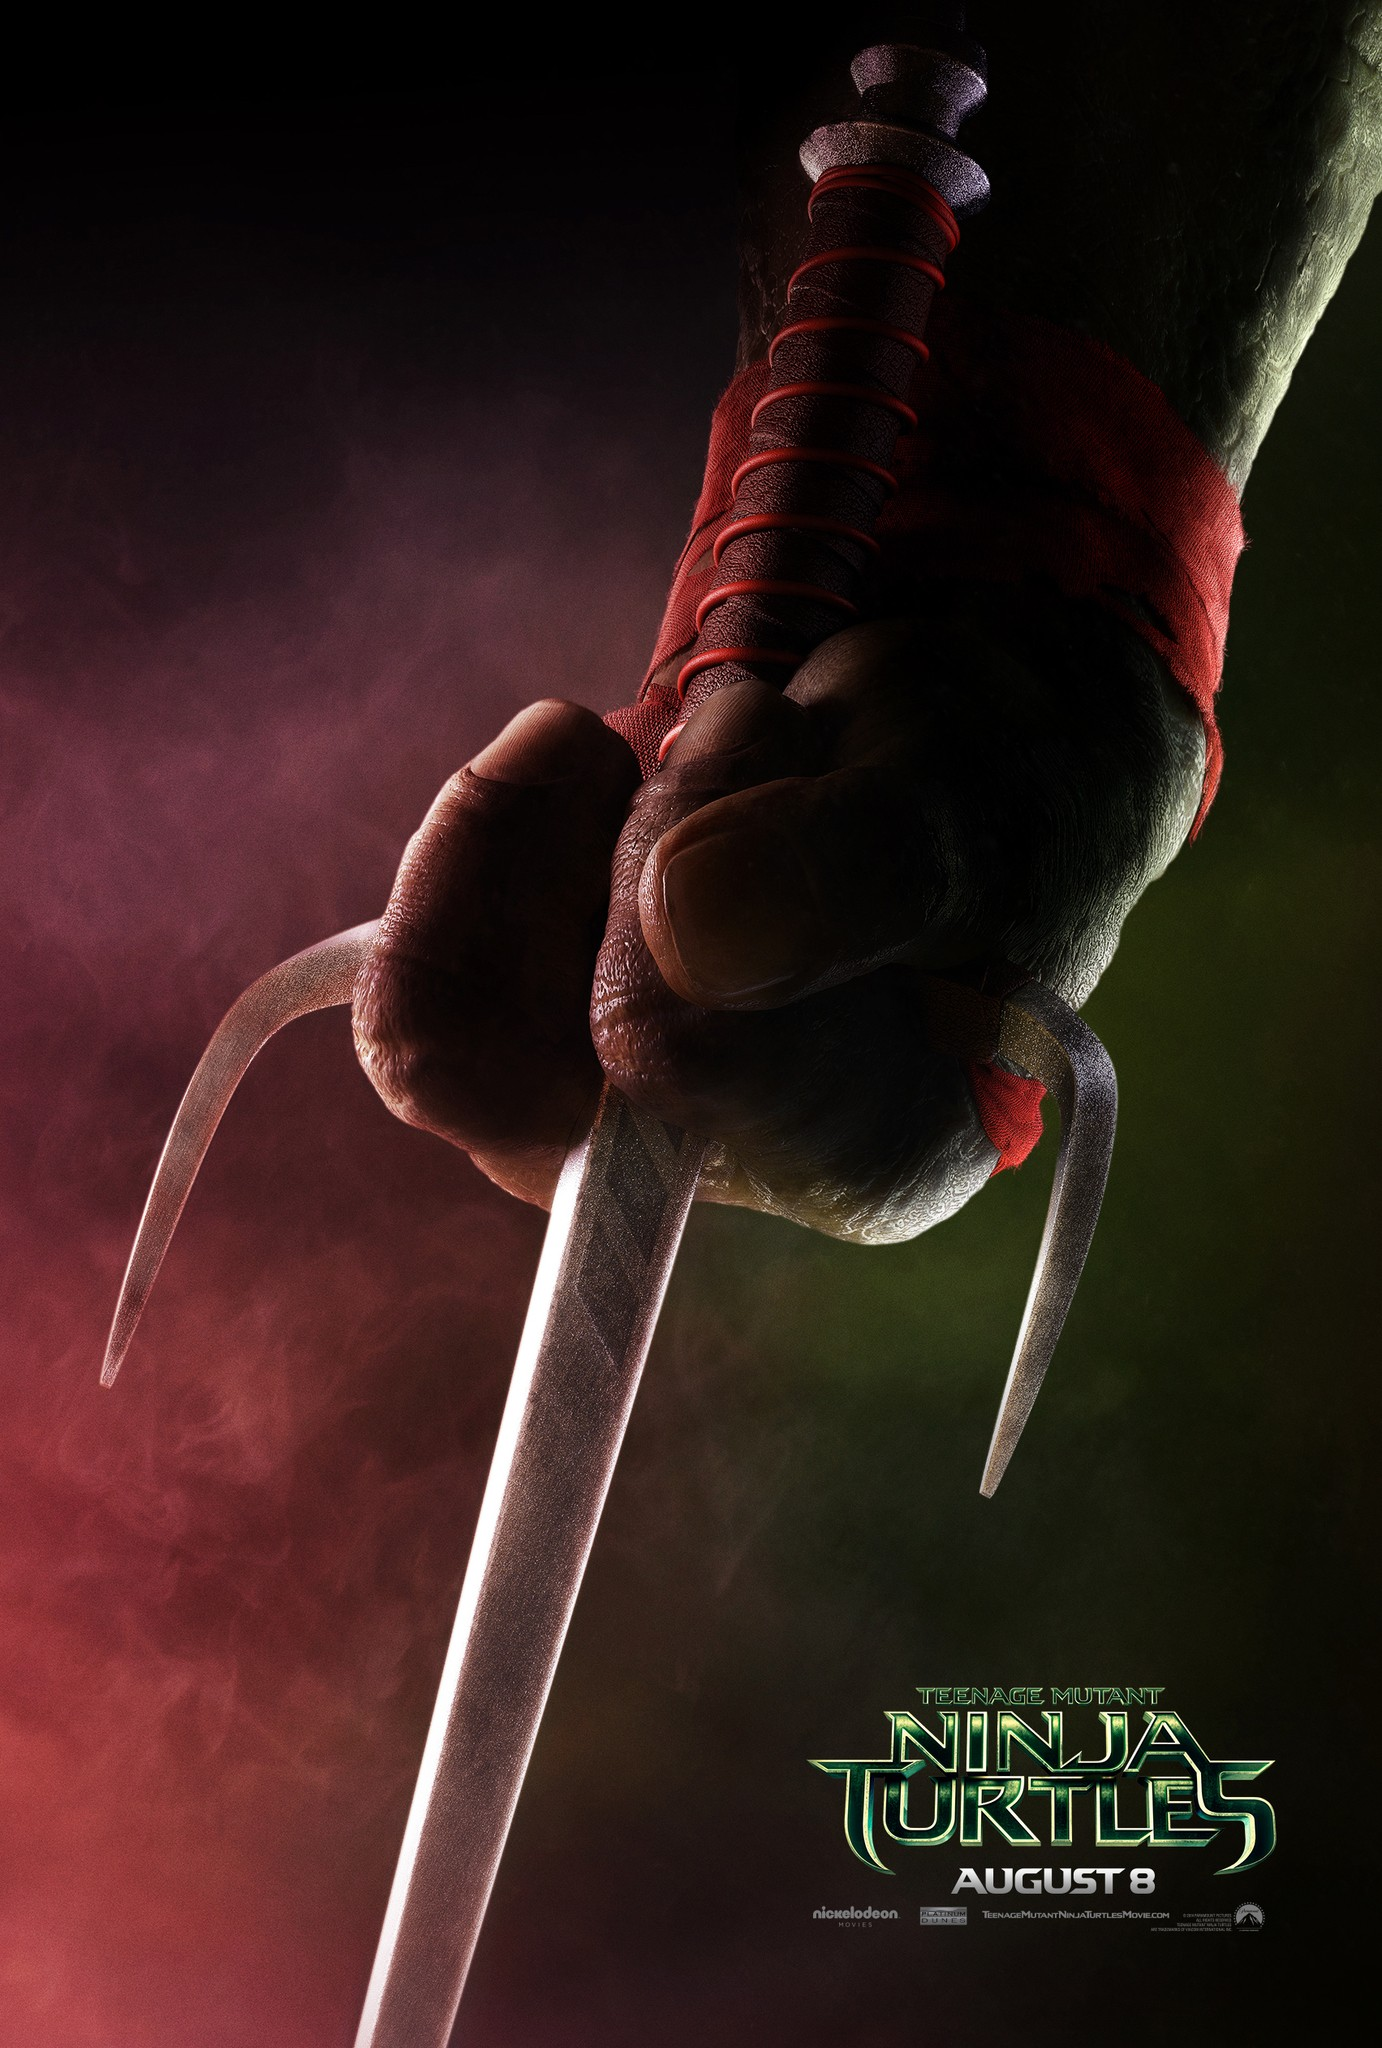 Teenage Mutant Ninja Turtles-Official Poster Banner PROMO XXLG-09ABRIL2014-04